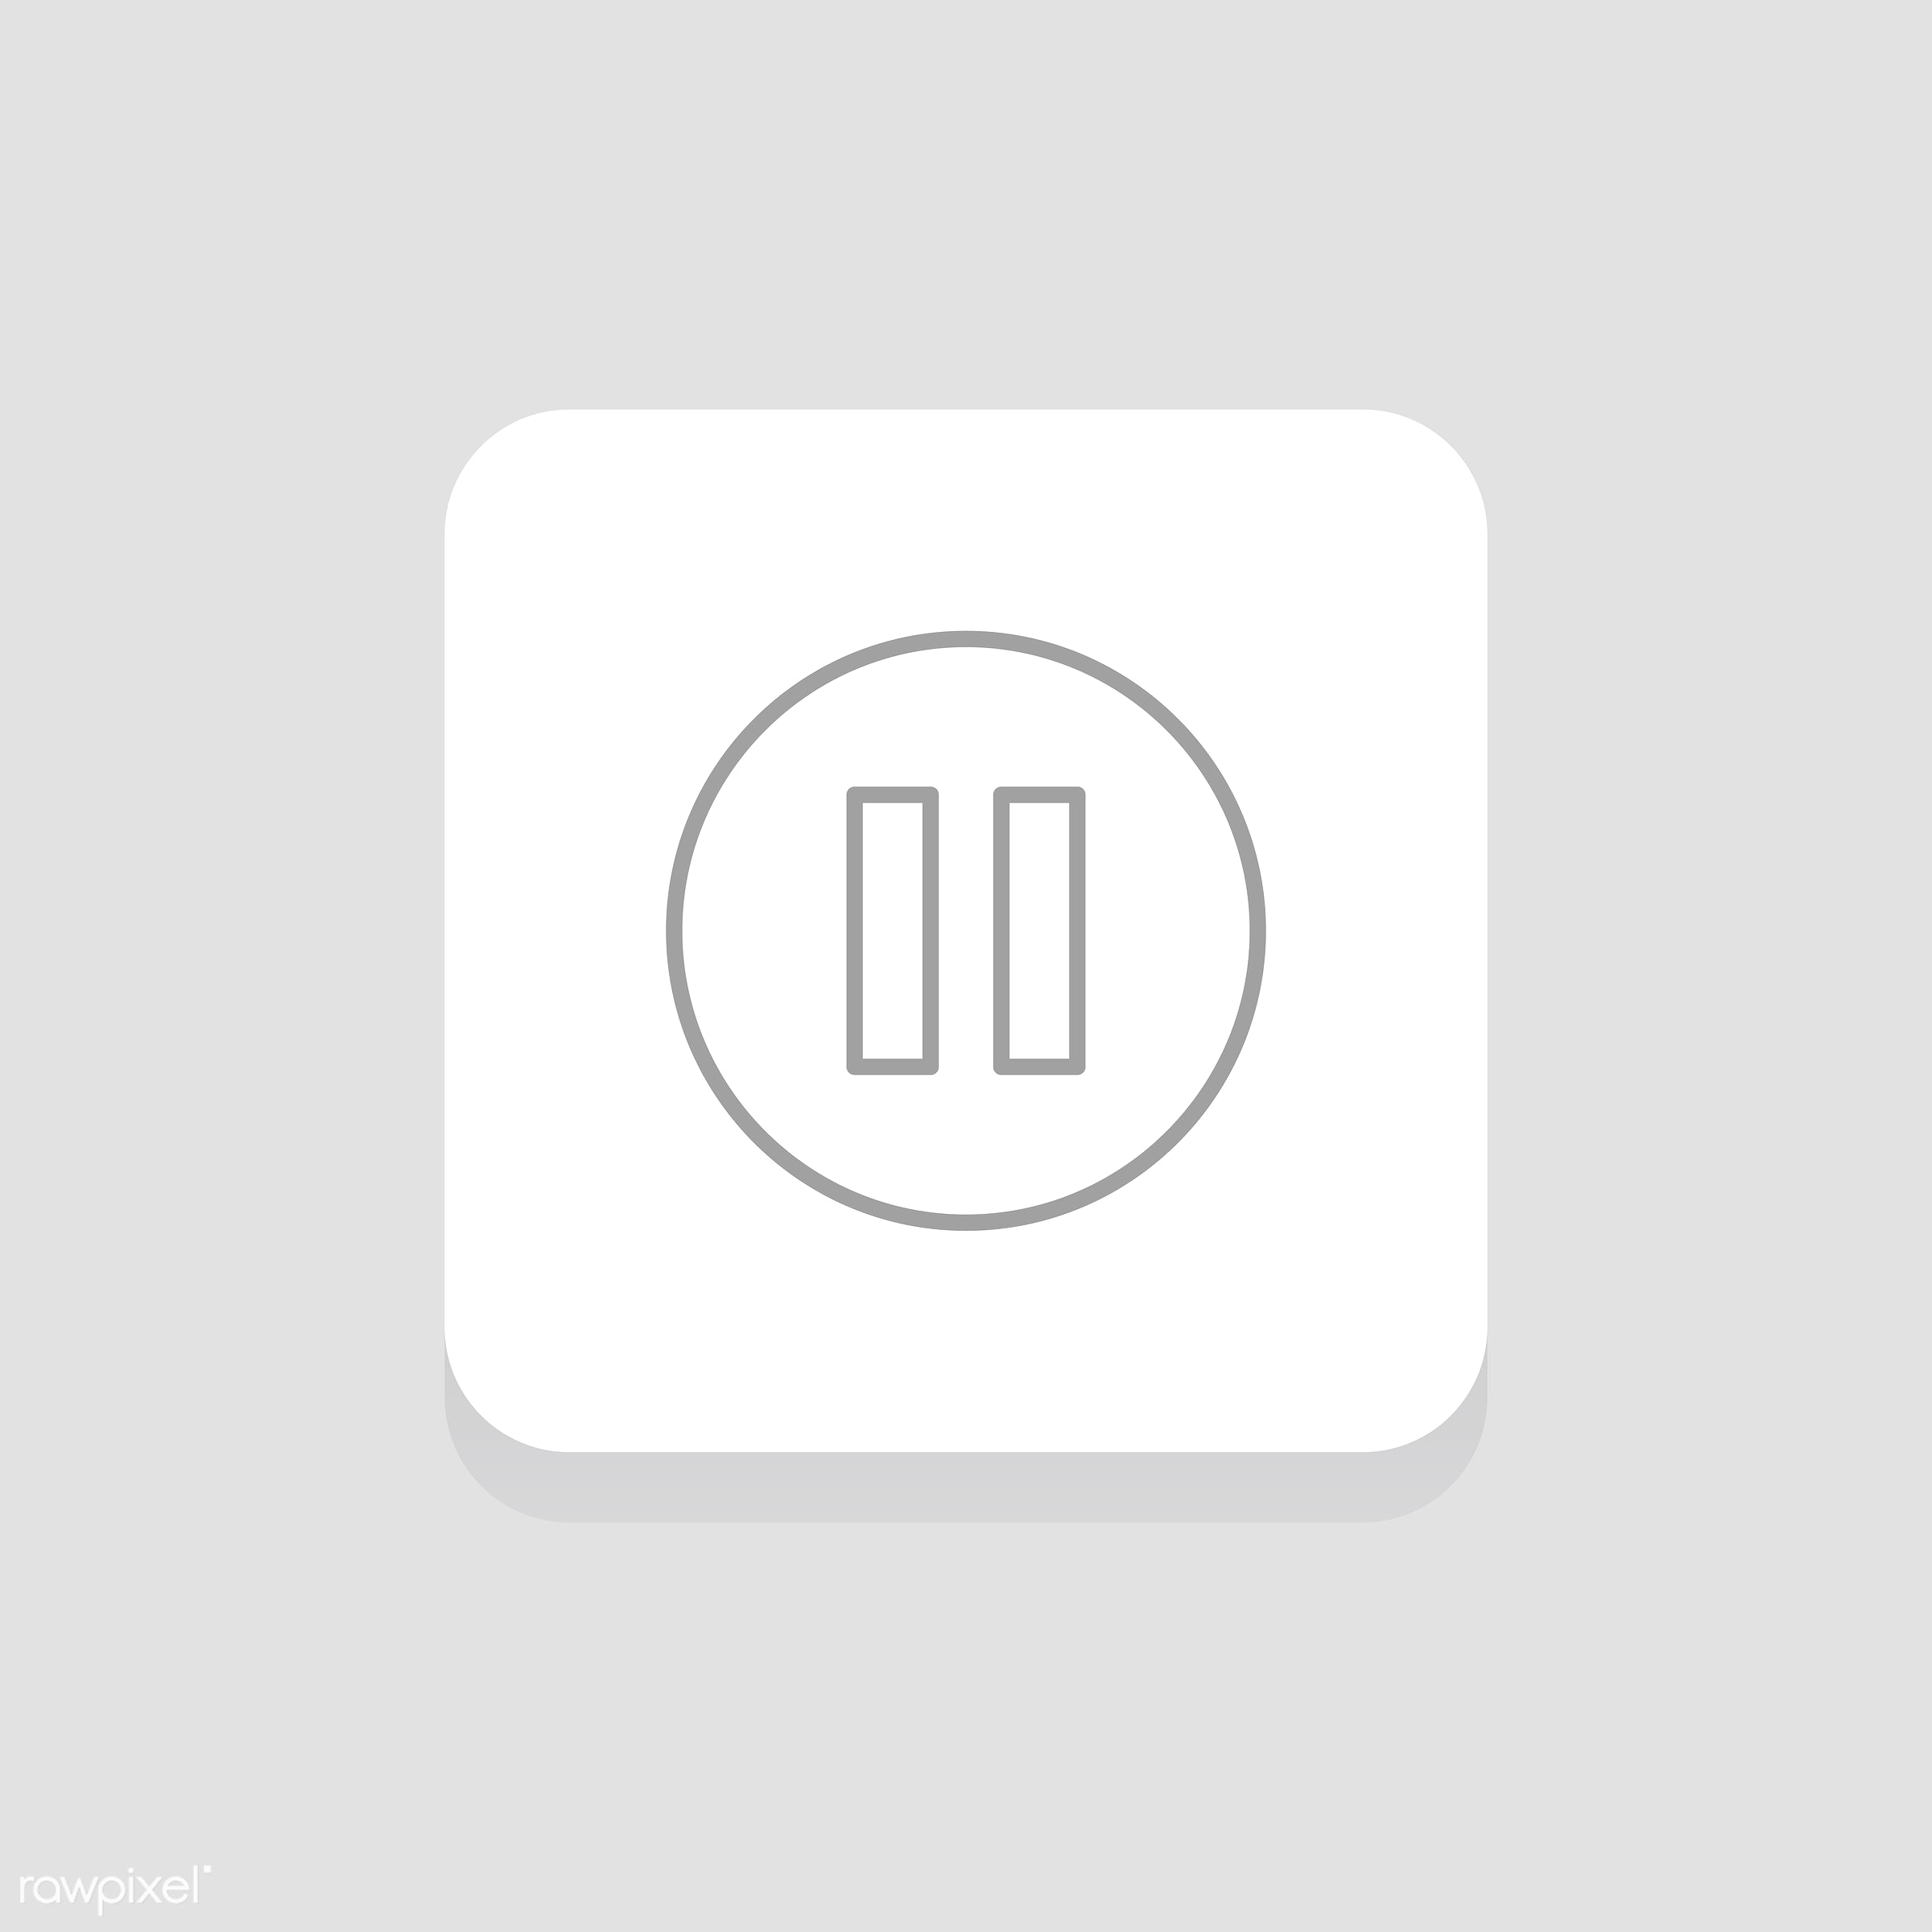 Vector of pause button icon - music, audio, design, entertainment, flat, graphic, icon, illustration, isolated, layout,...